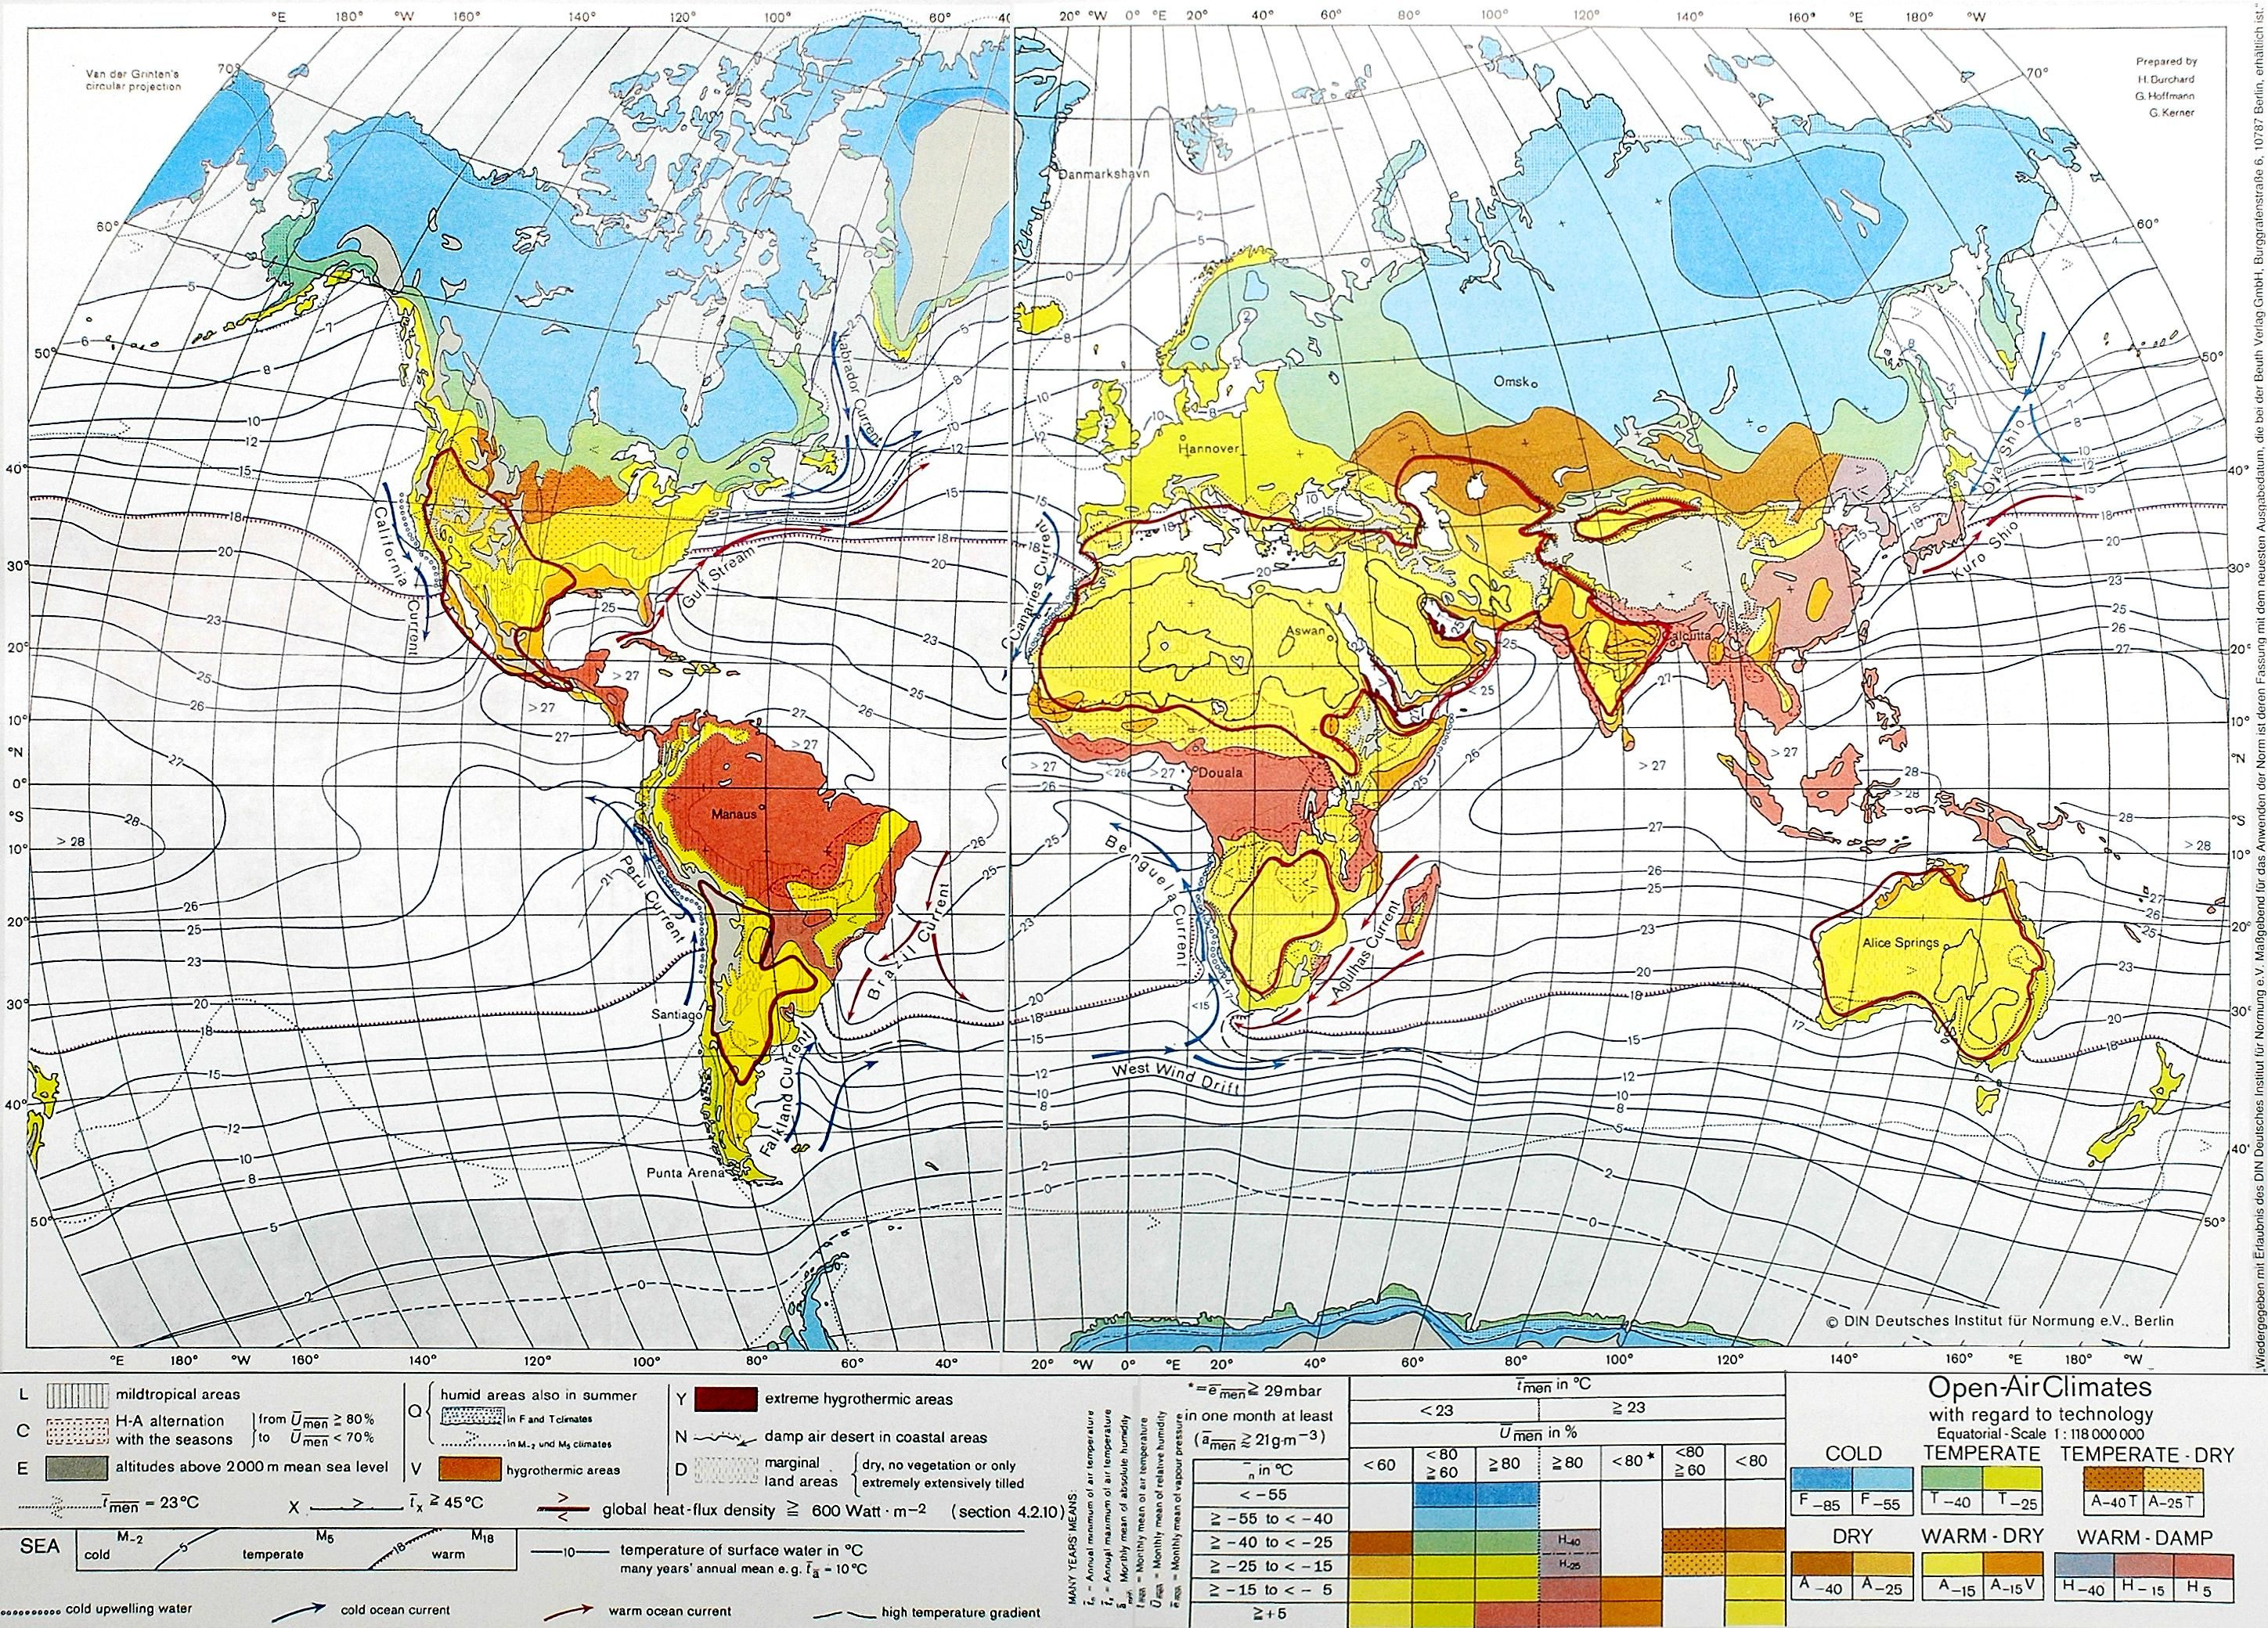 Humidity World Map.Climate And Extremes Of Temperature And Humidity Around The World